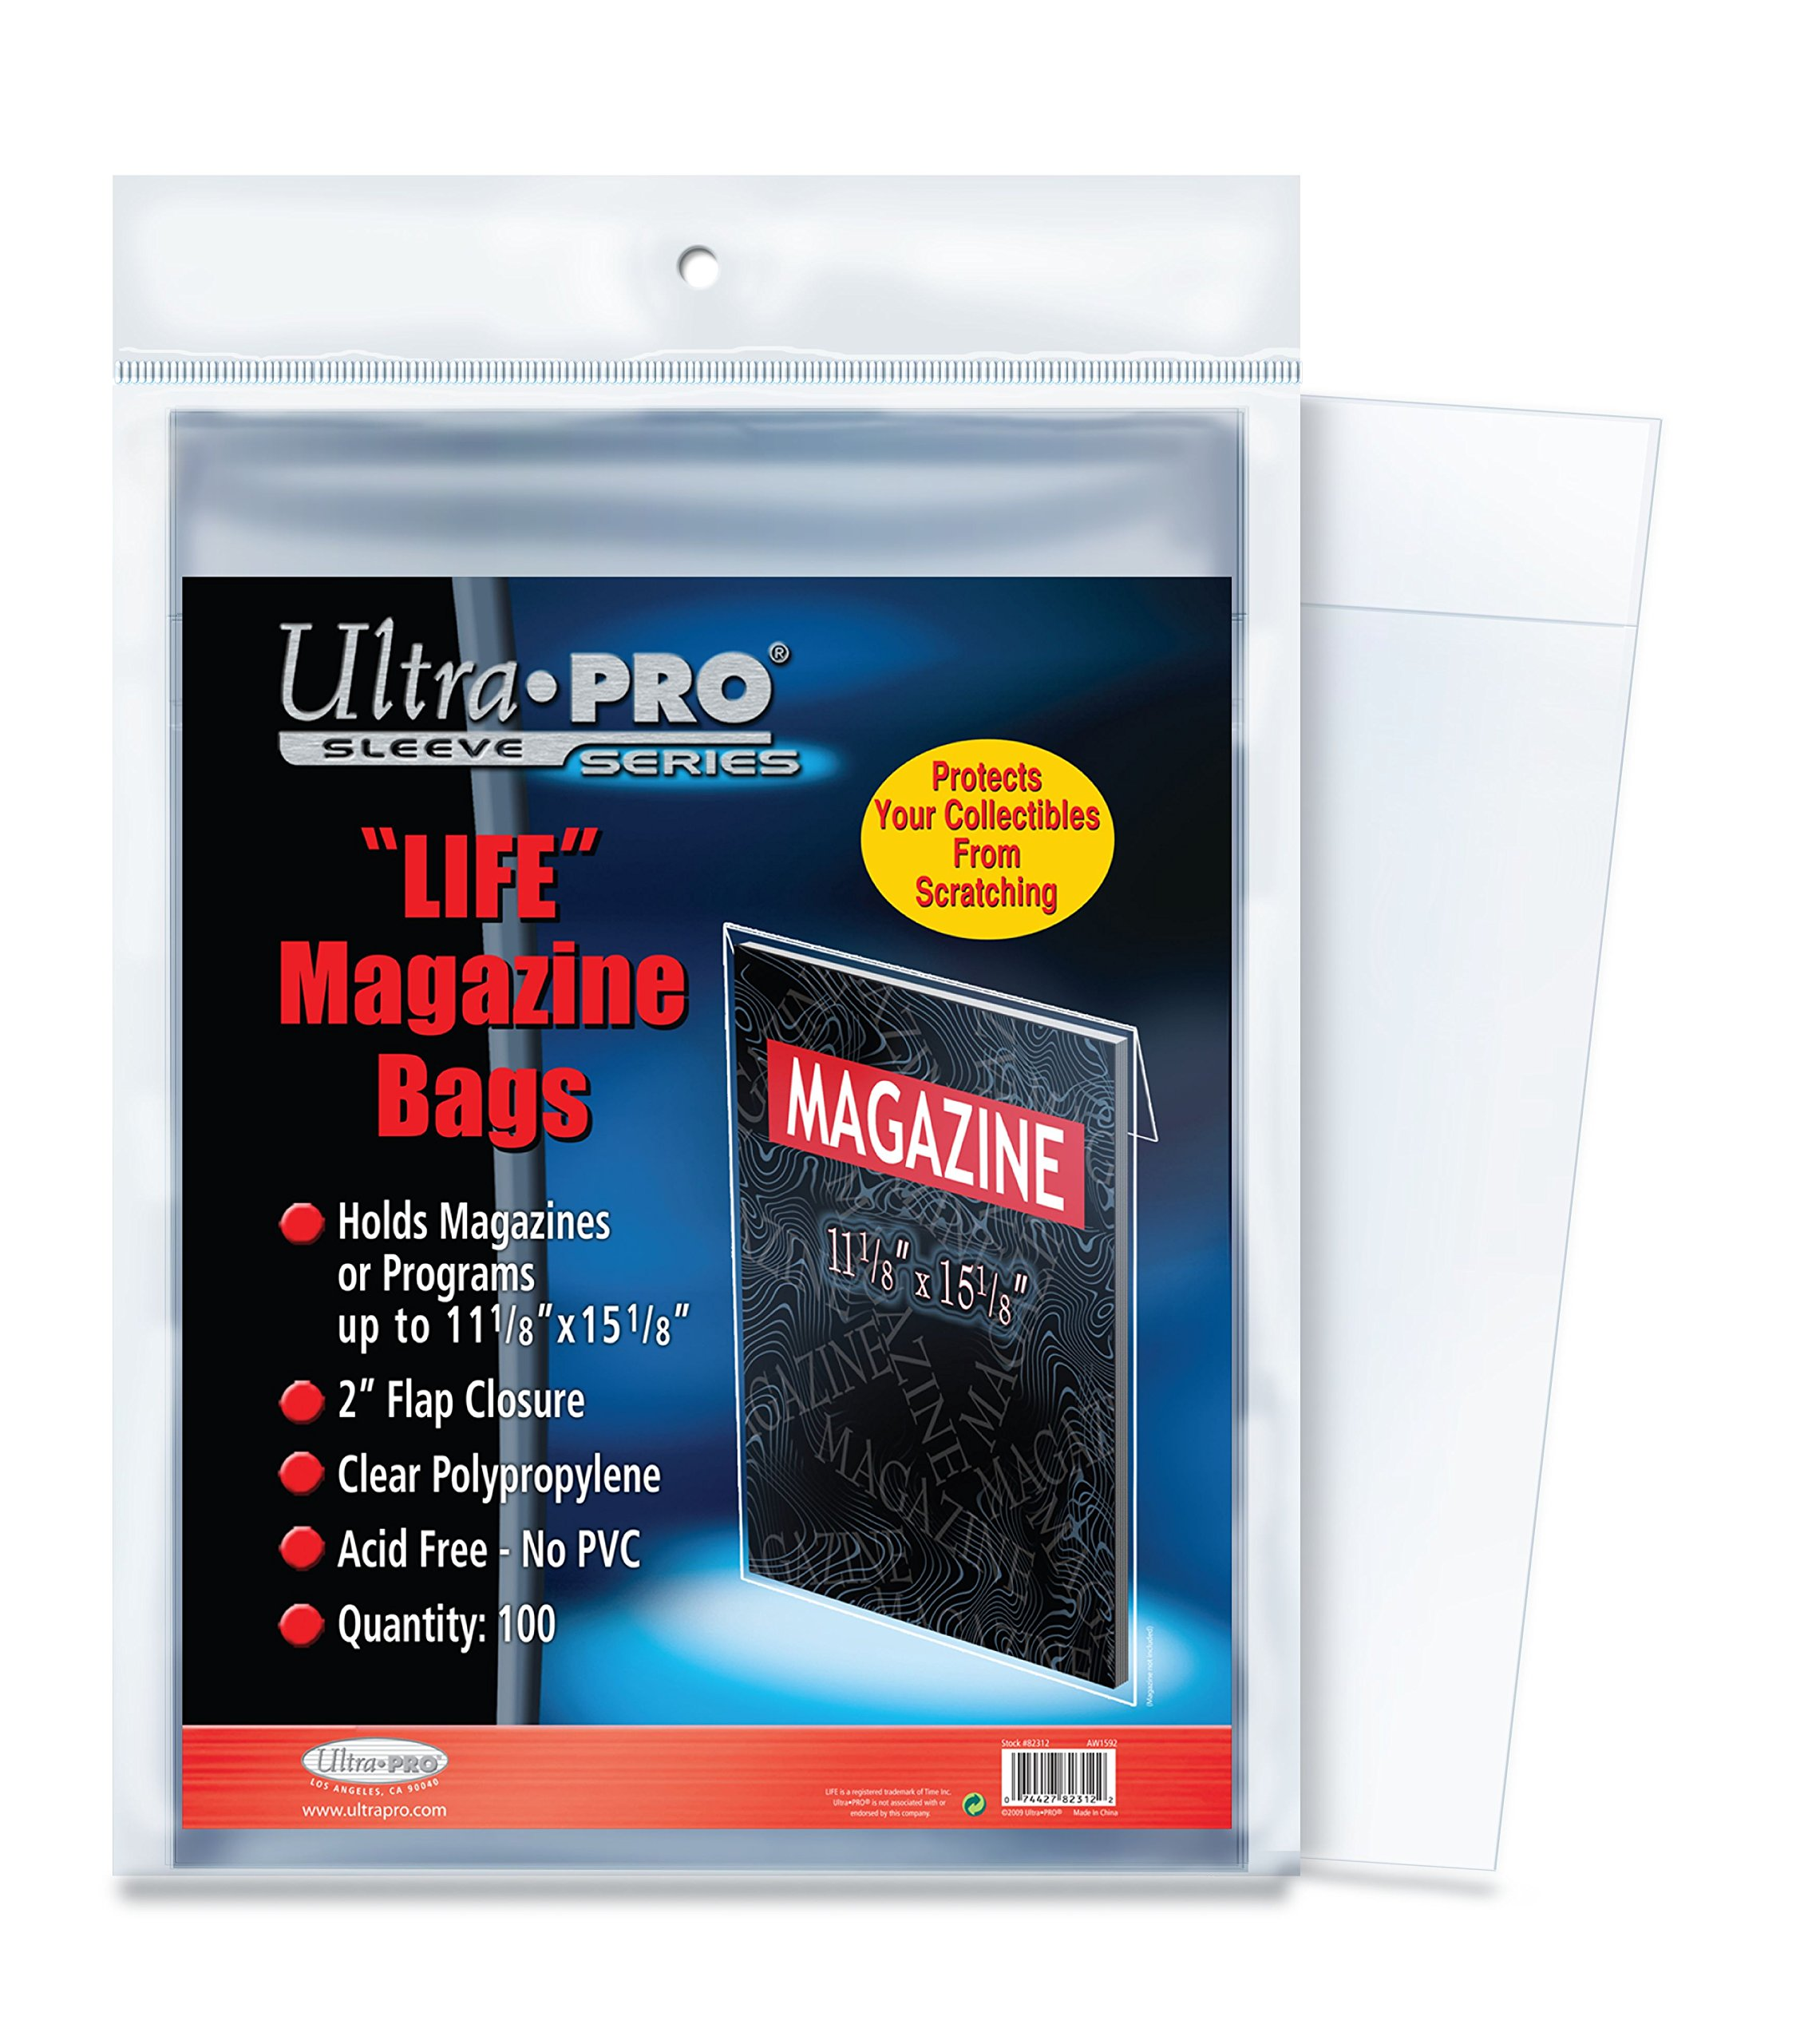 Ultra PRO Life Magazine 11-1/8 x 15-1/8'' Bags (100 Count Pack), Small, Clear